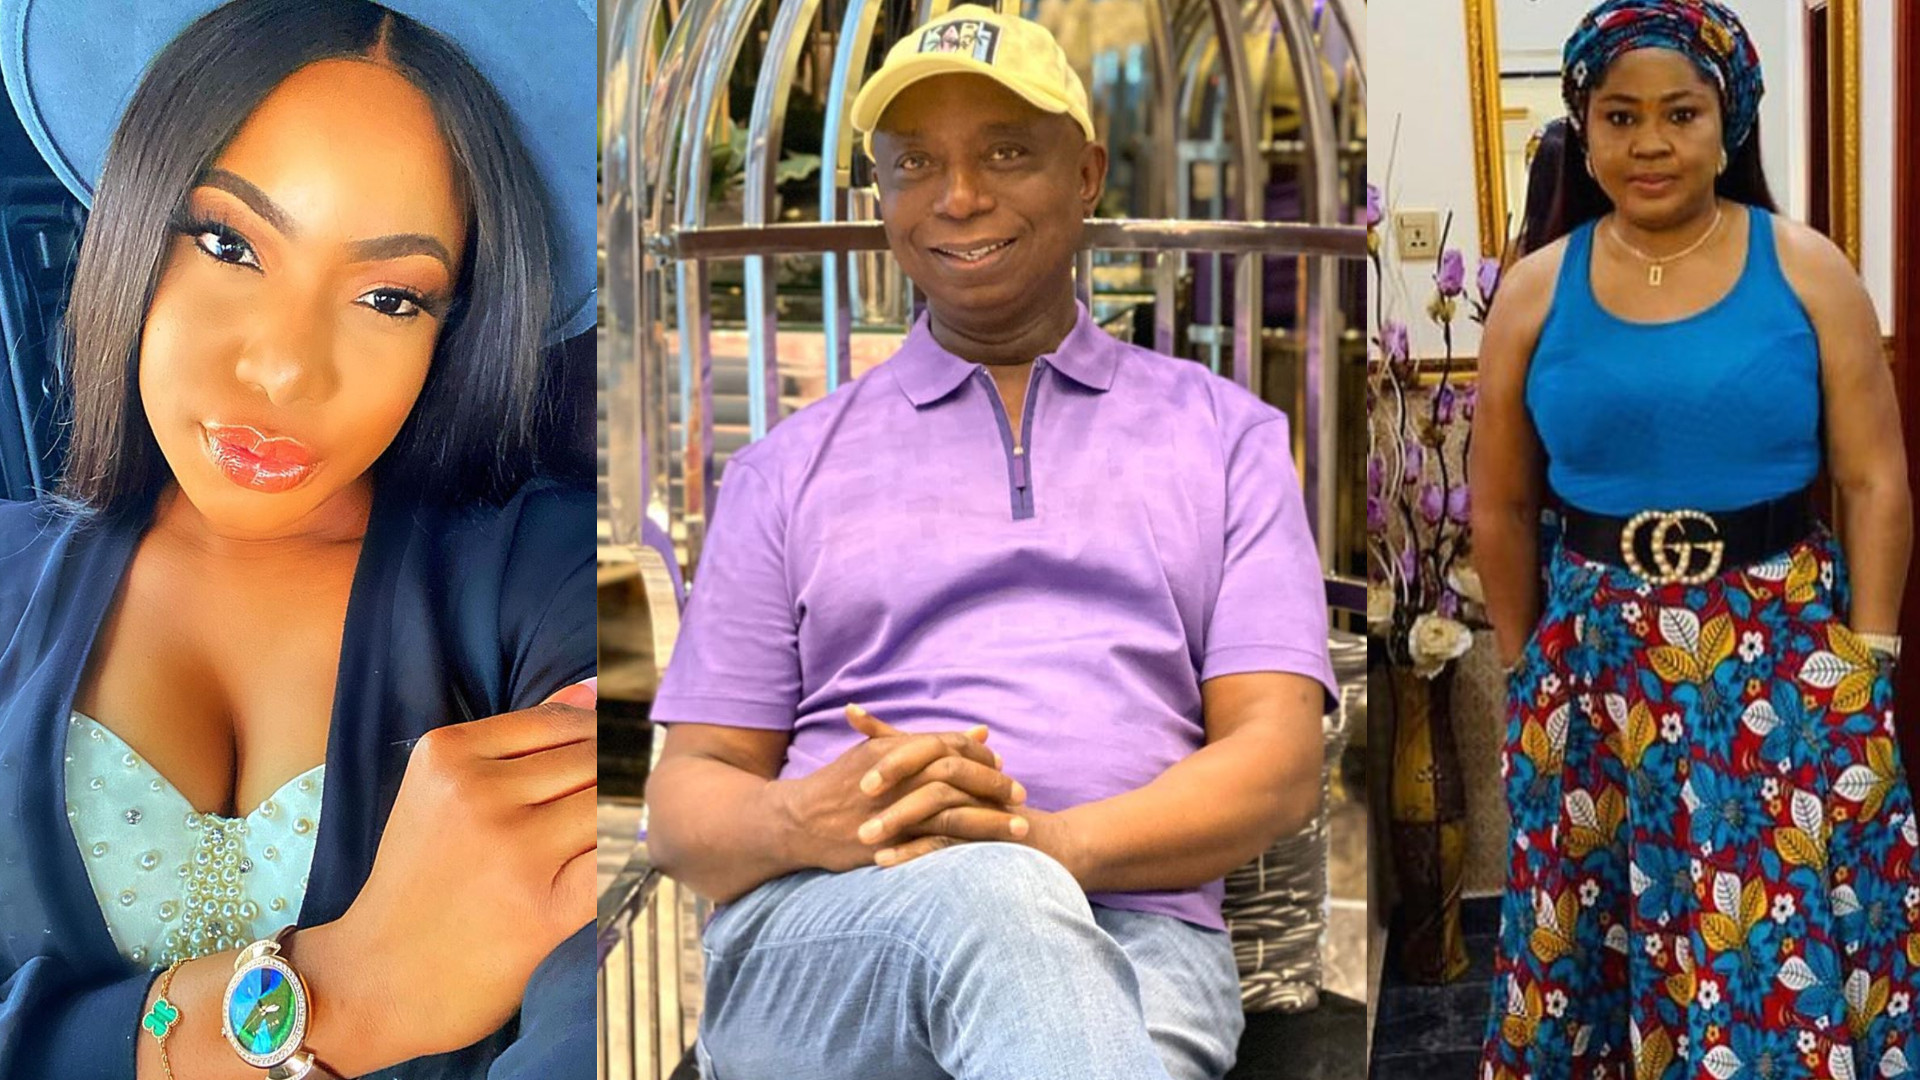 I'M NOT ABOUT TO BECOME ANYONE'S 7TH WIFE – CHIKA IKE SETS THE RECORD STRAIGHT ON DATING REGINA DANIELS' HUSBAND, NED NWOKO